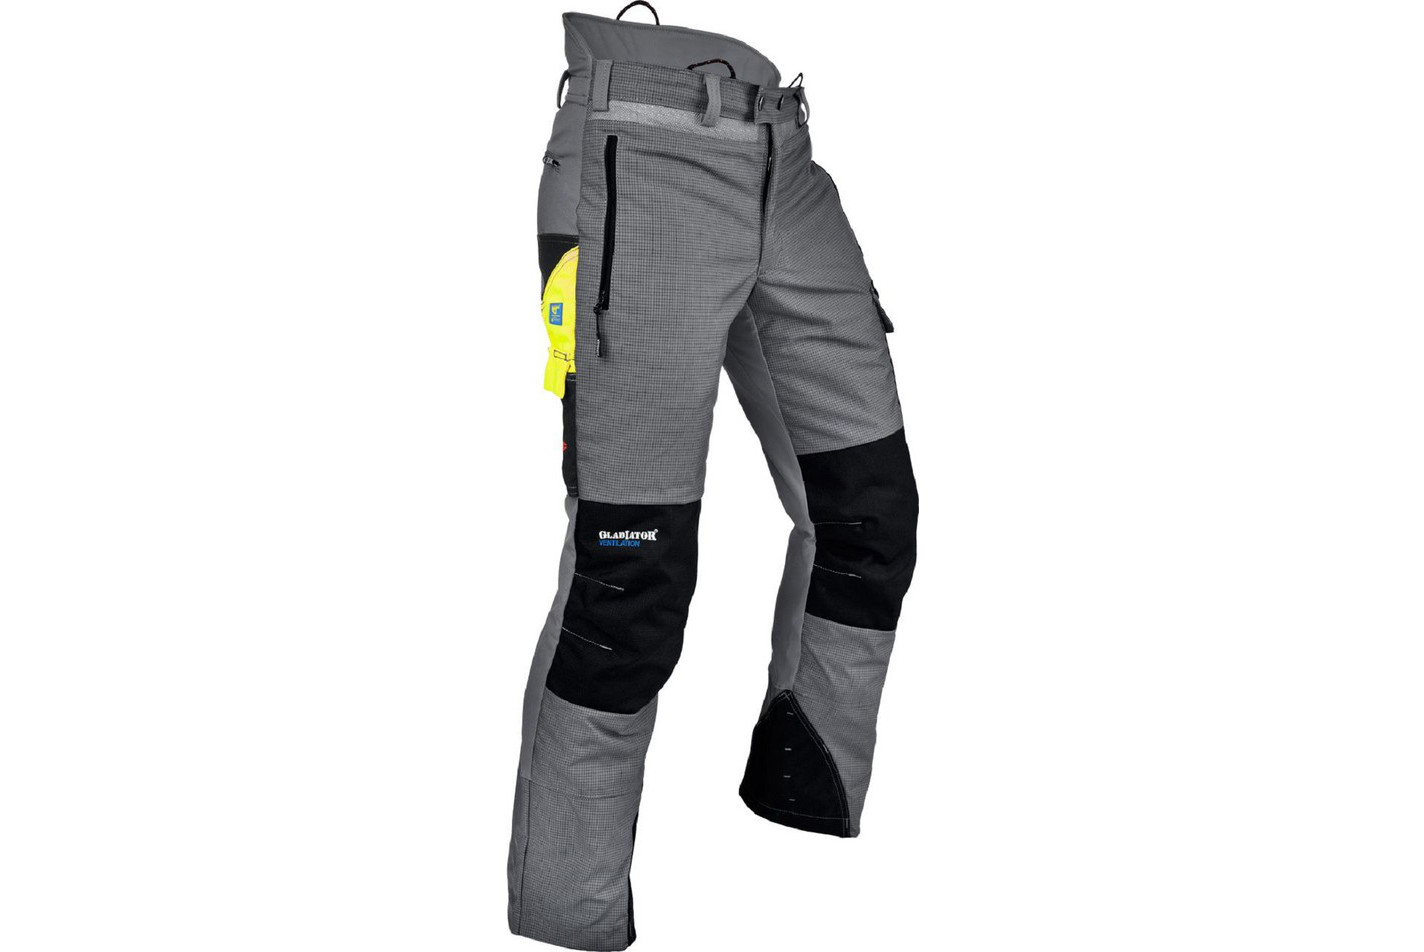 PANTALON ANTI COUPURE PFANNER GLADIATOR VENTILATION - GRIS